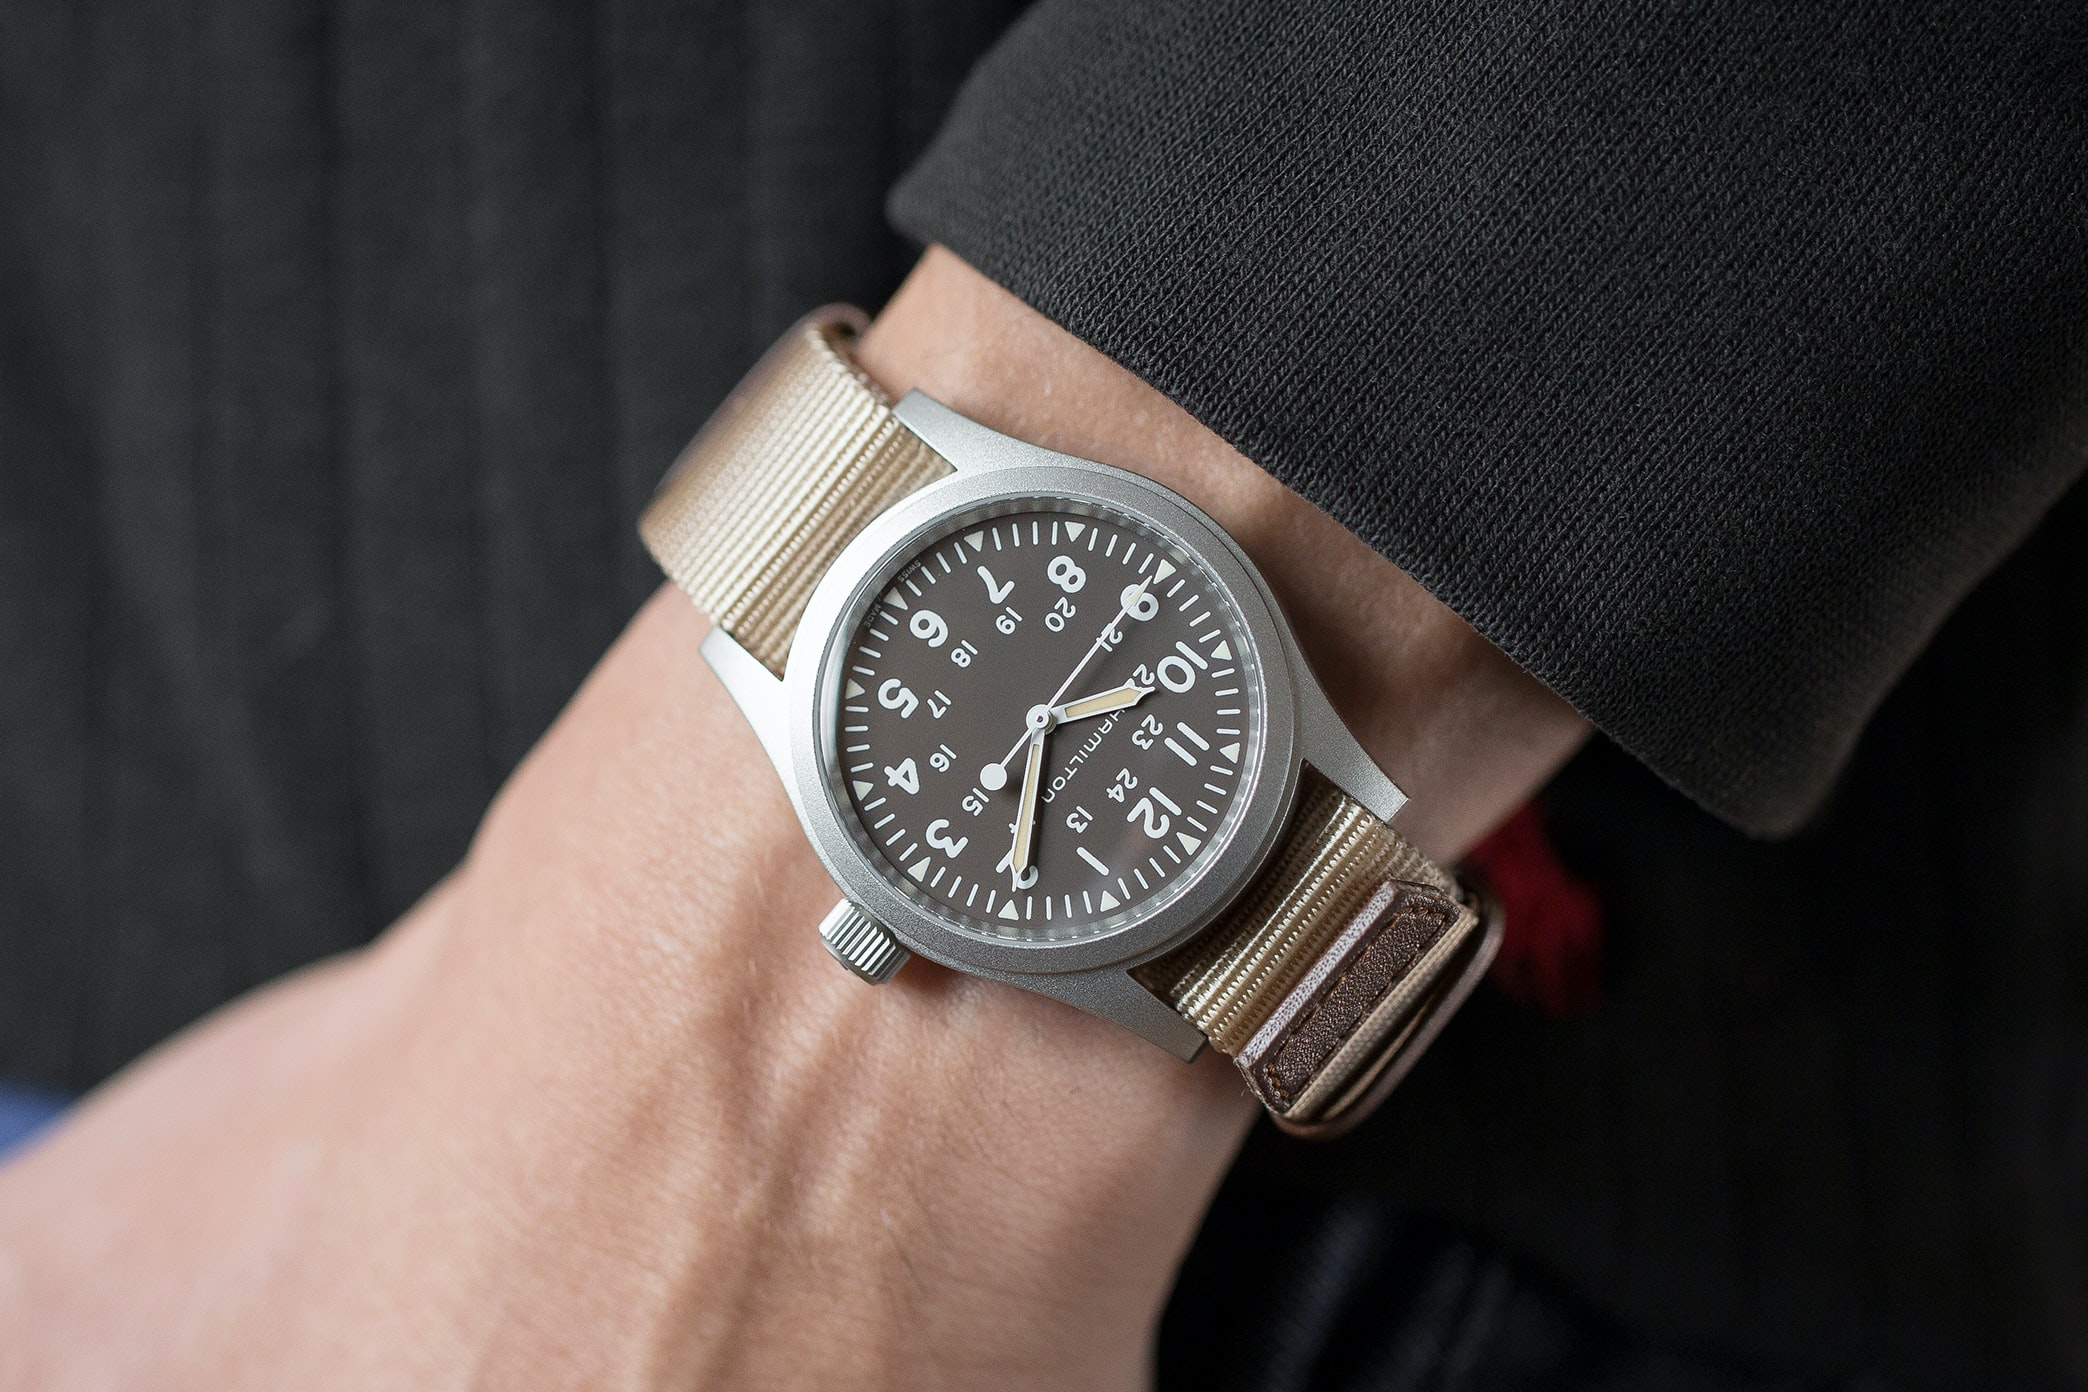 In The Shop - Introducing: The Hamilton Khaki Field Mechanical, Now With A Brown Dial